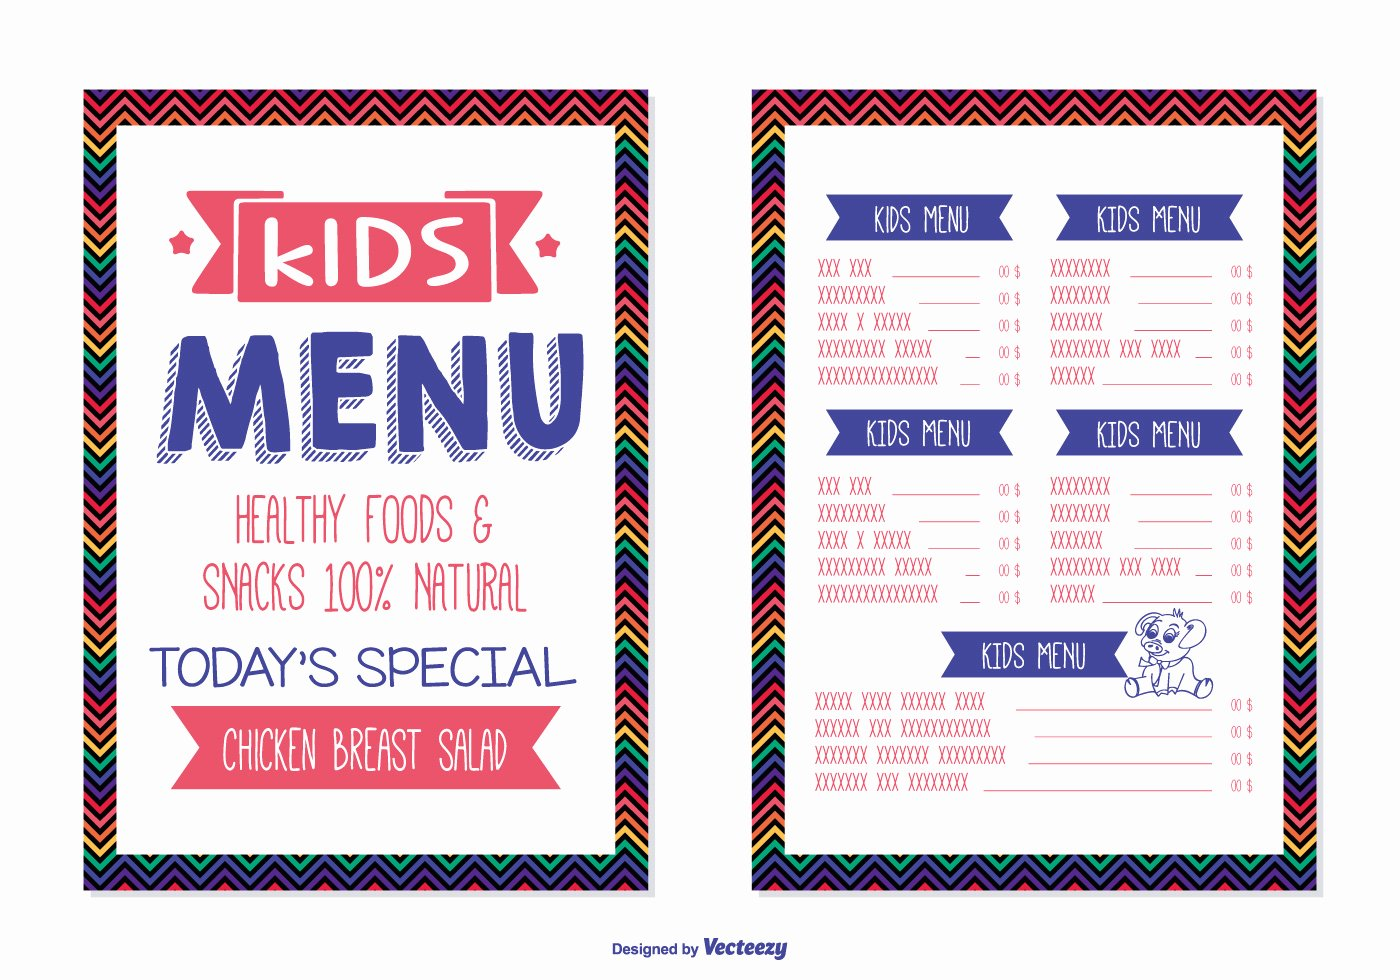 Free Kids Menu Template Beautiful Kids Menu Template Download Free Vector Art Stock